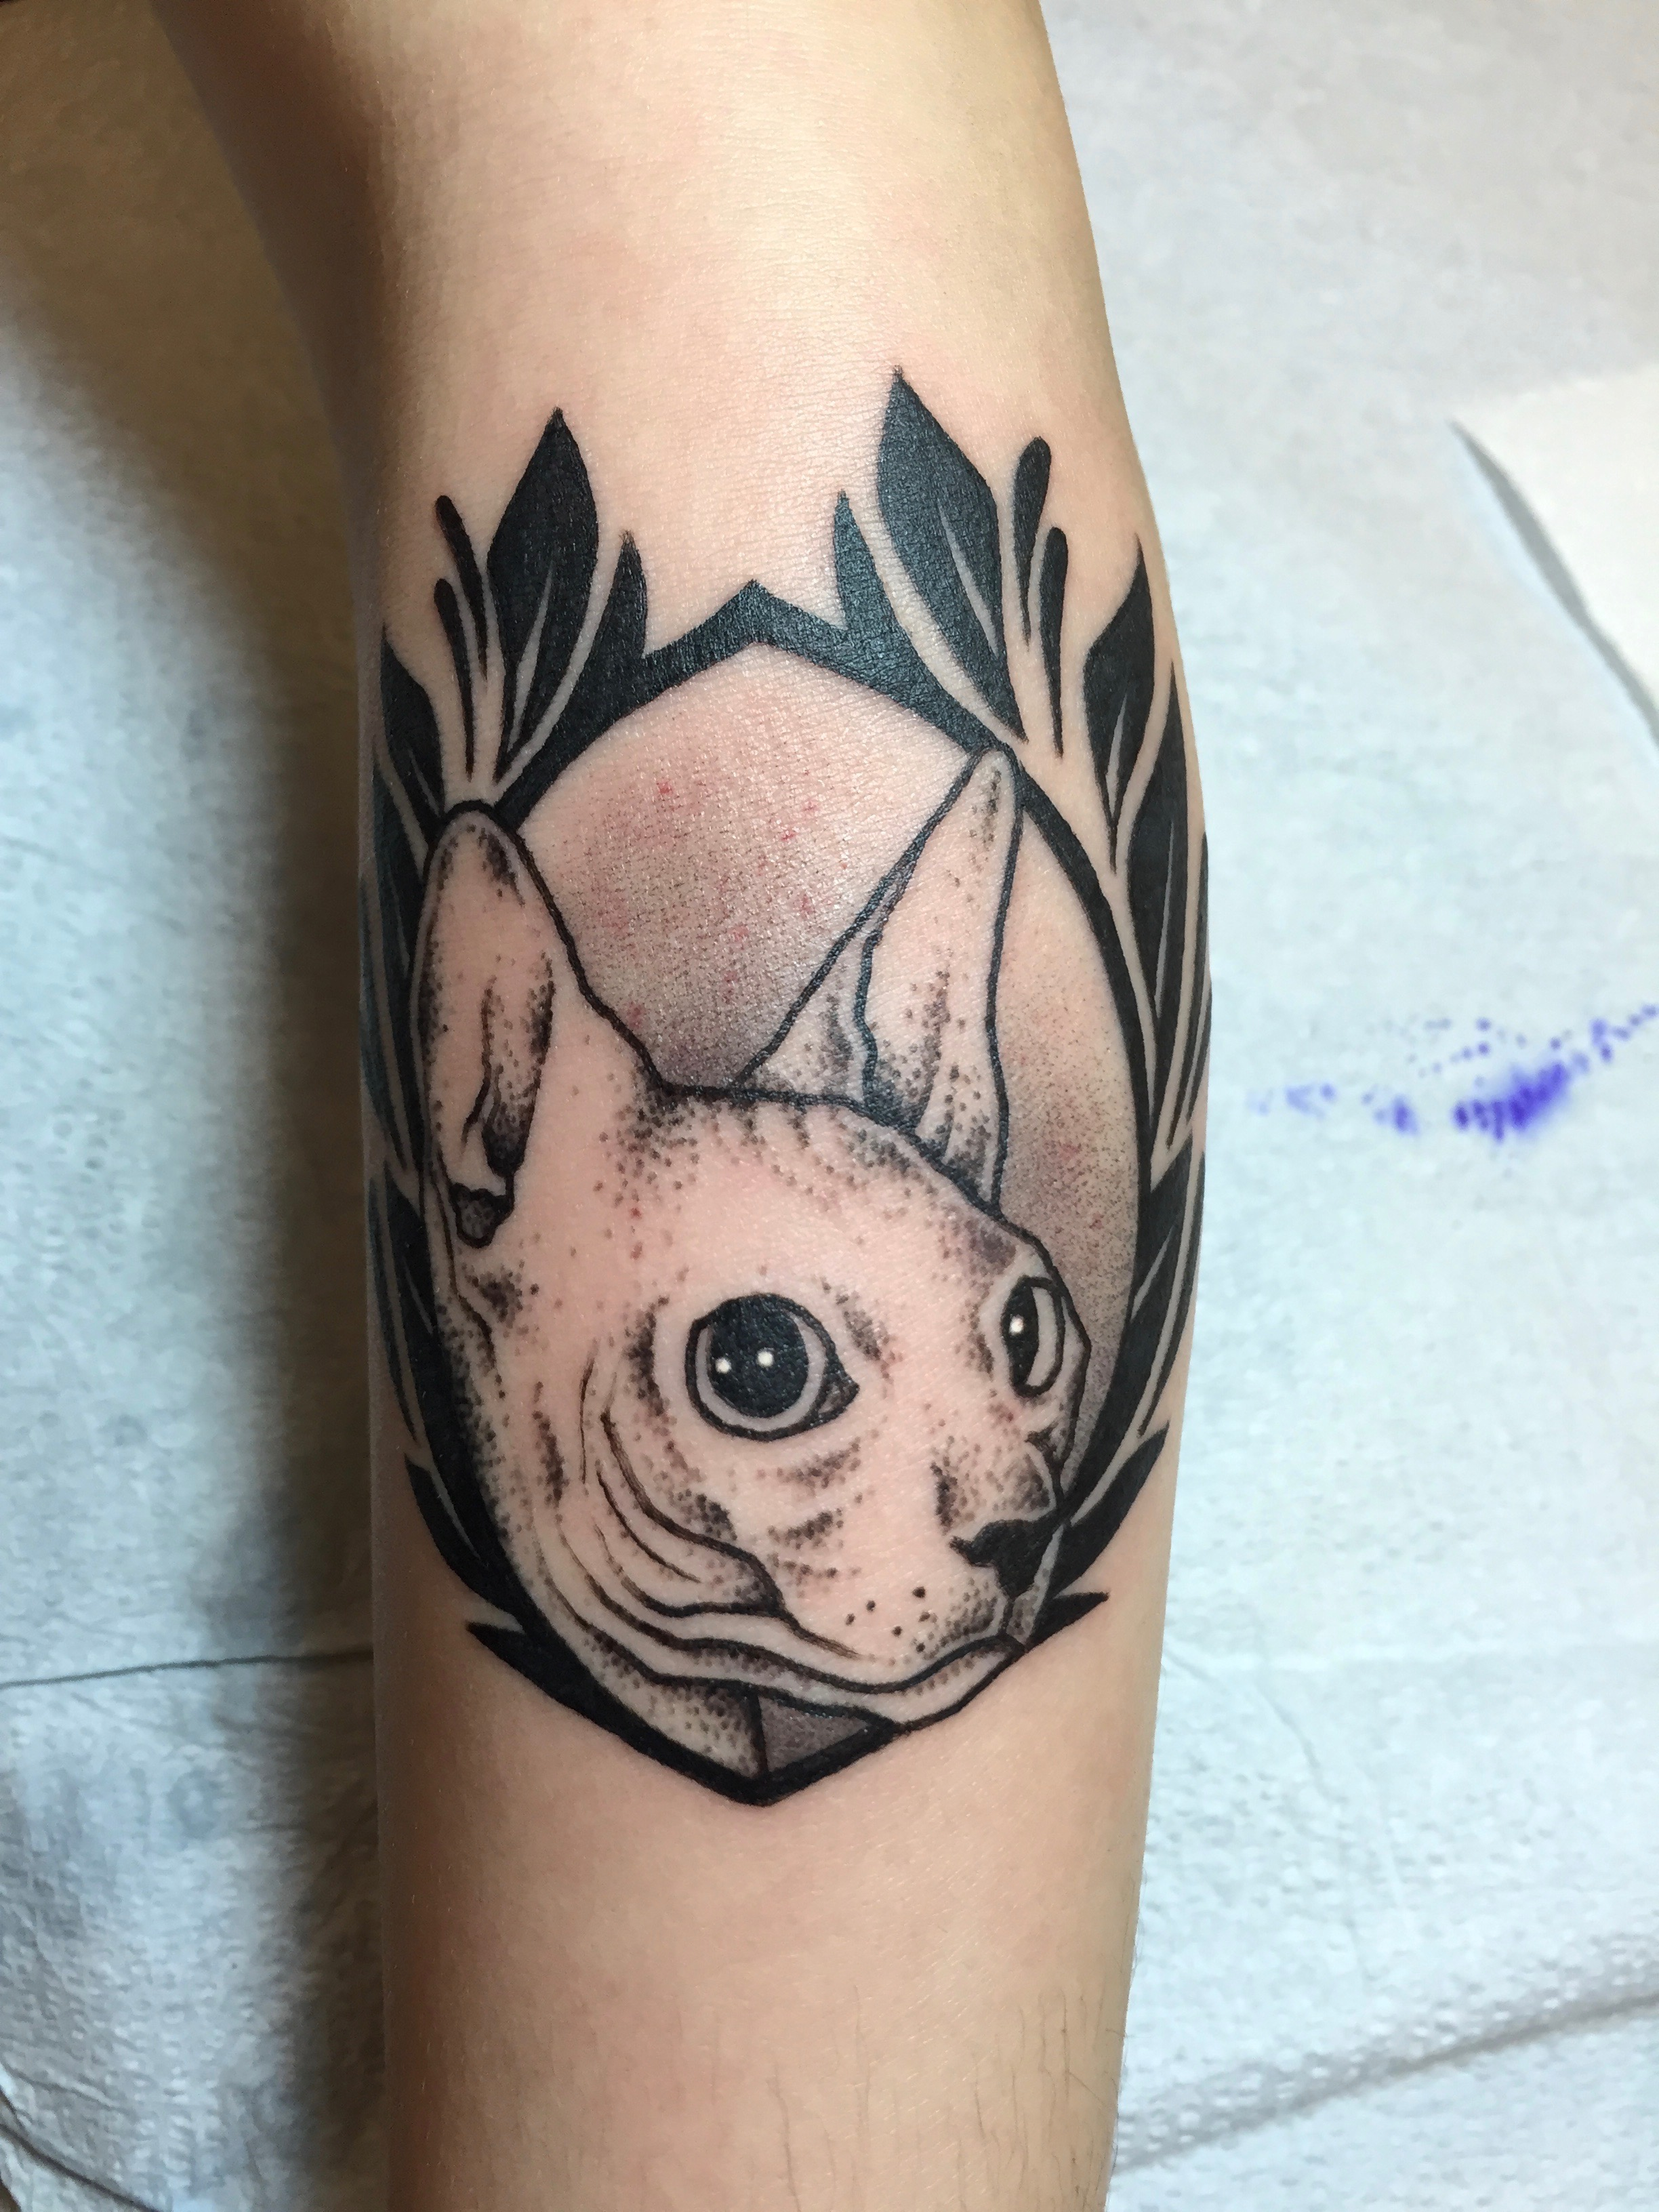 Blackwork cat tattoo by Alveno